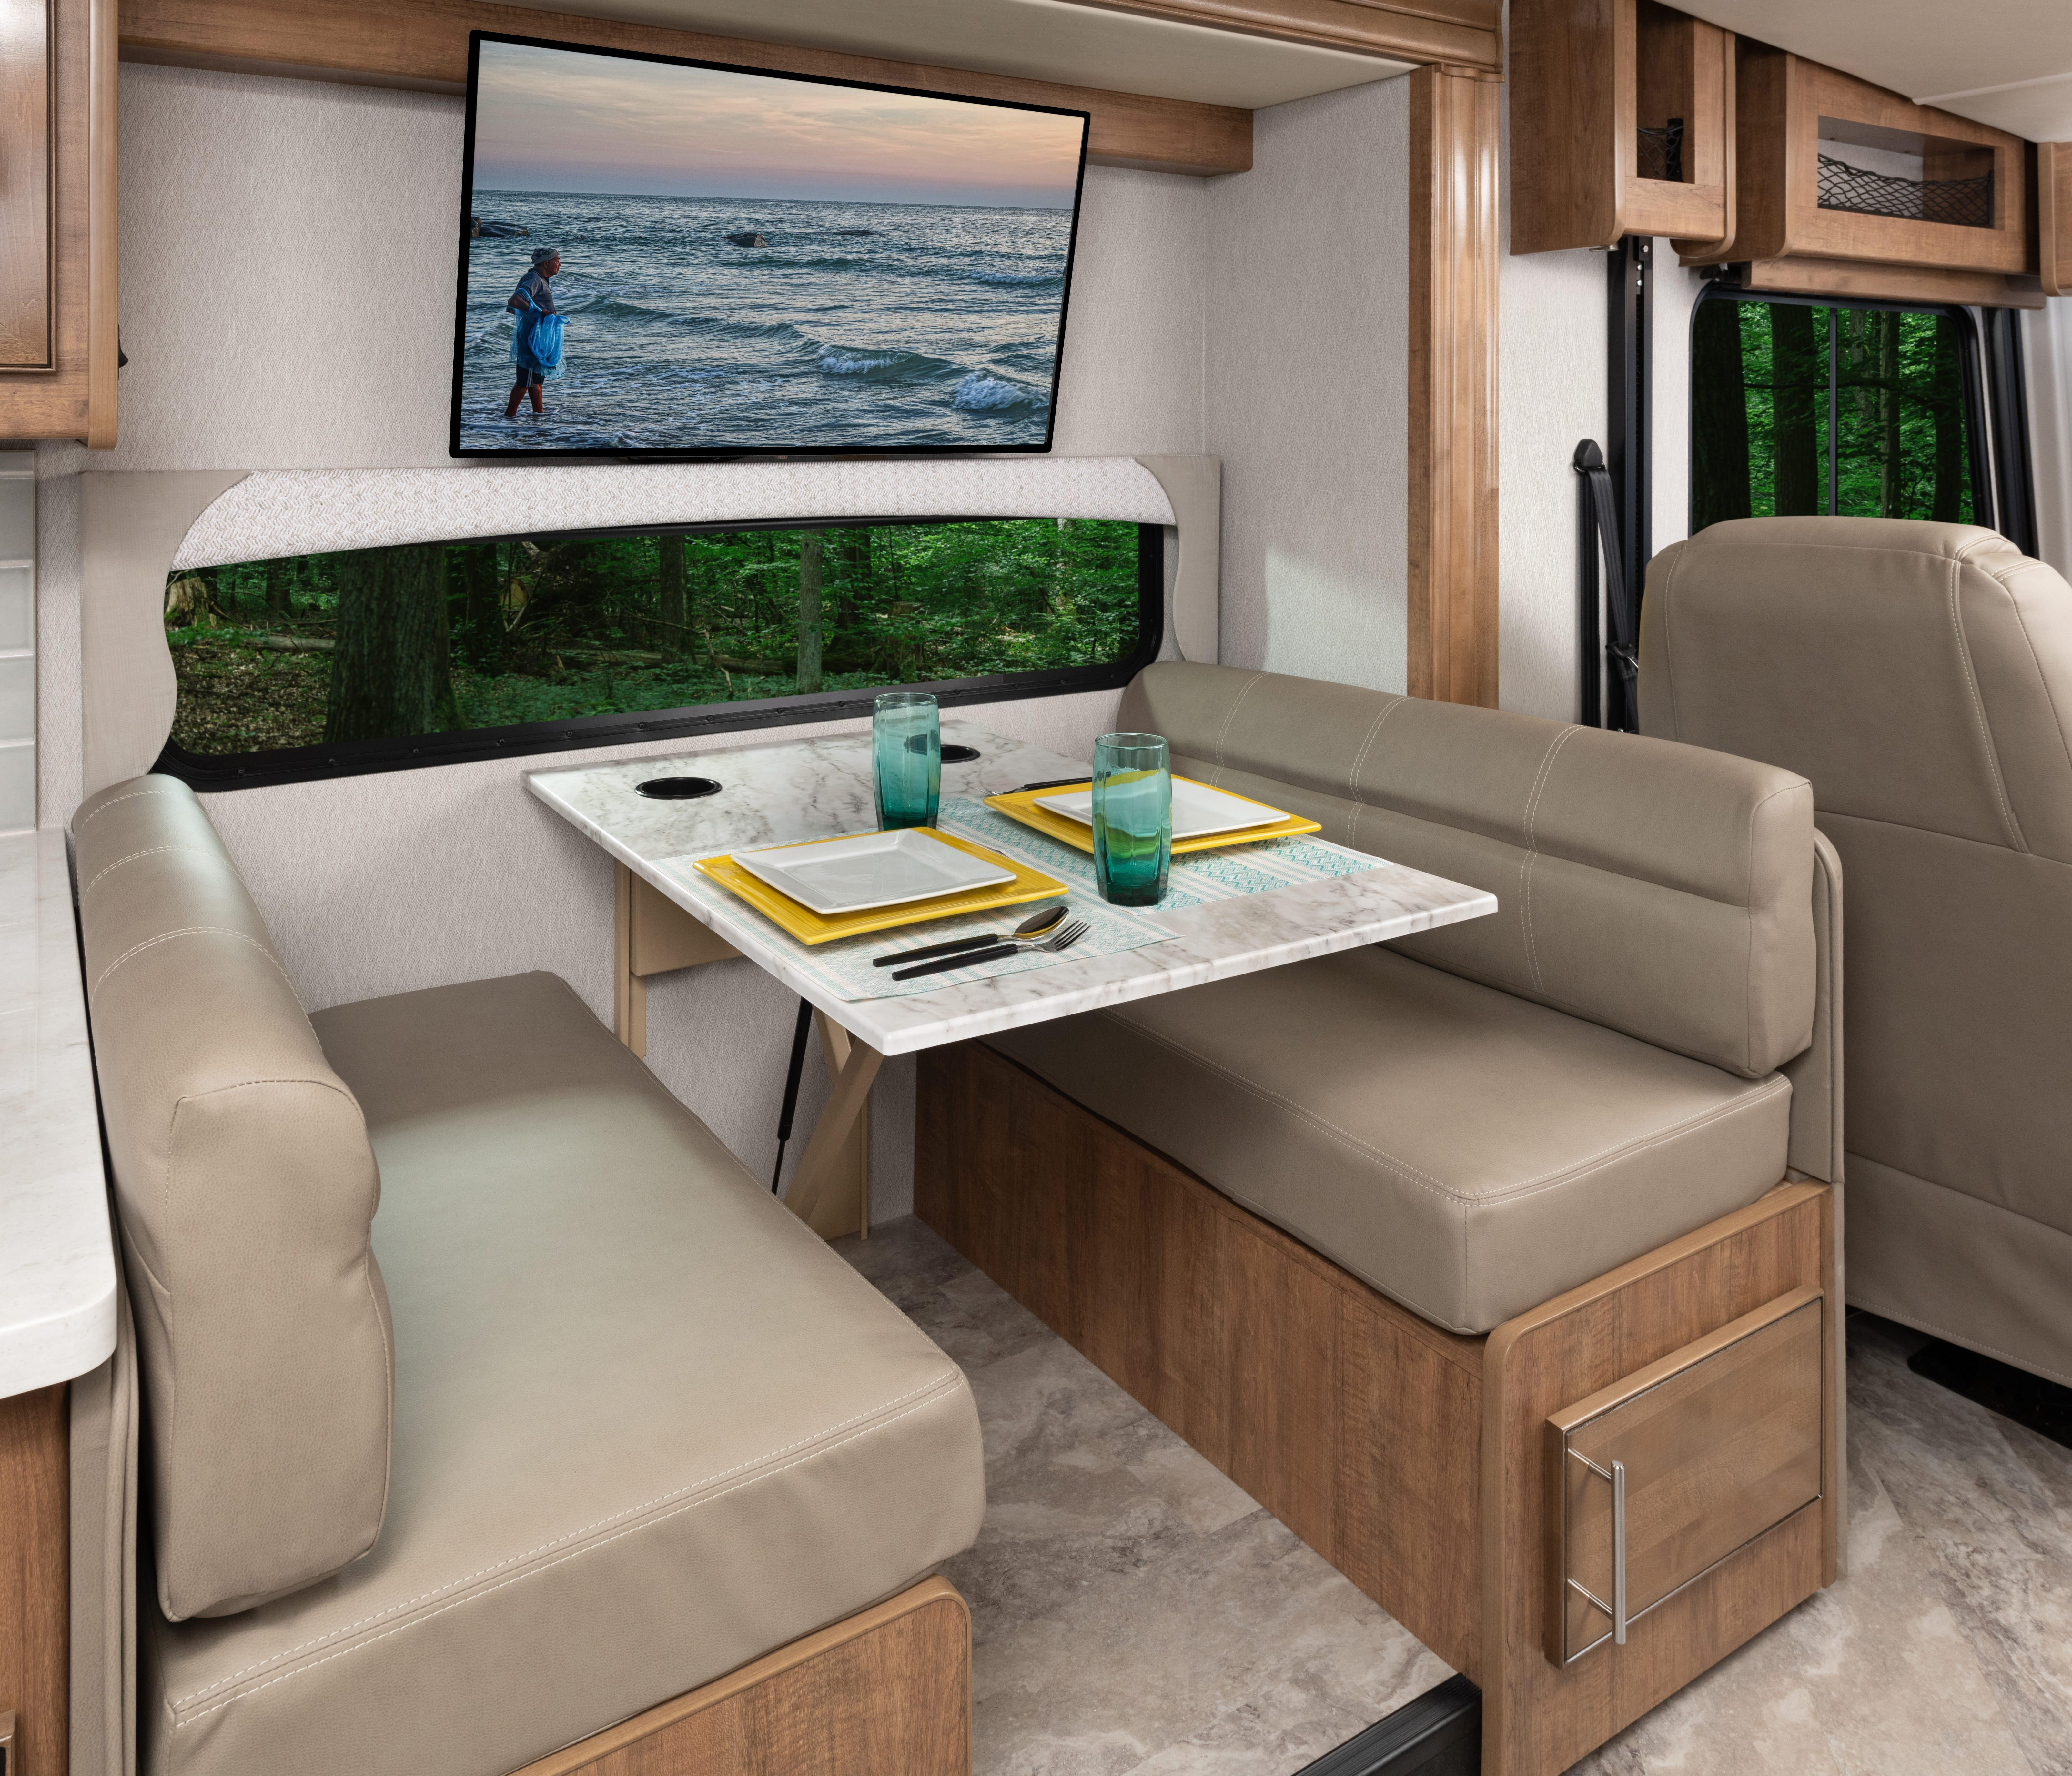 5 dinette INTERIOR Fortis 33 HB Outerbanks Eng Chest MY22 7502